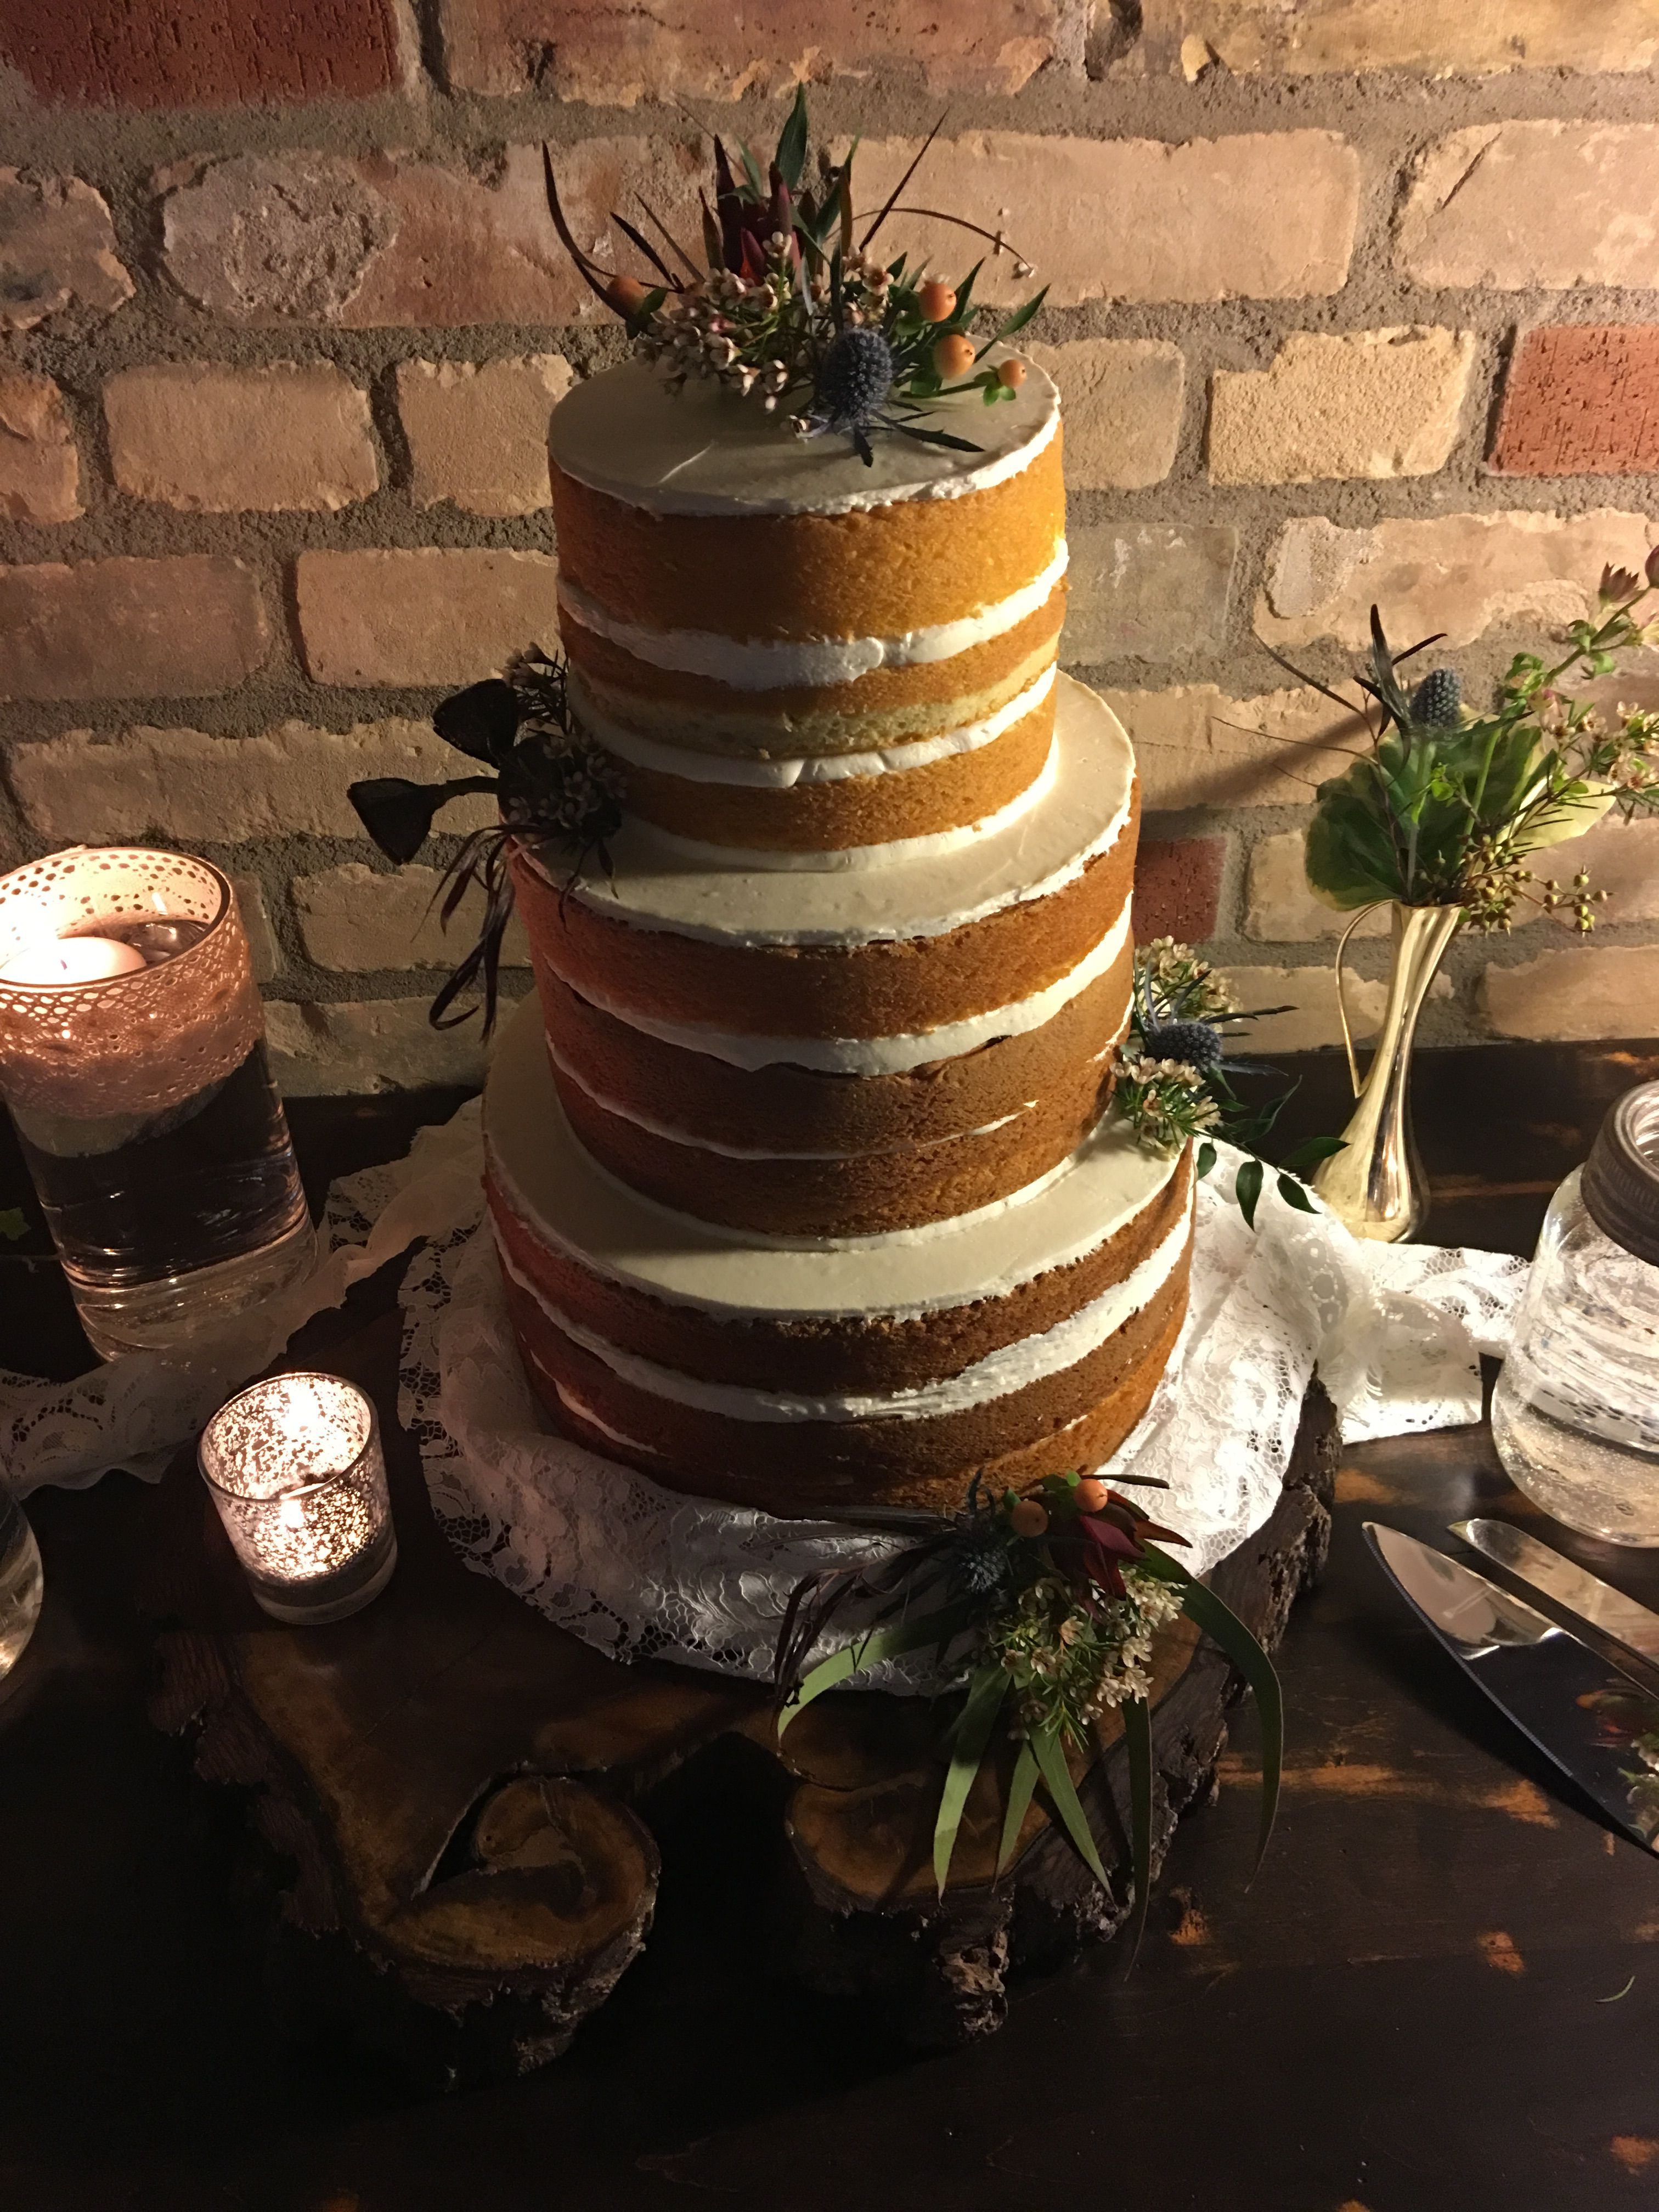 Our brides naked cake